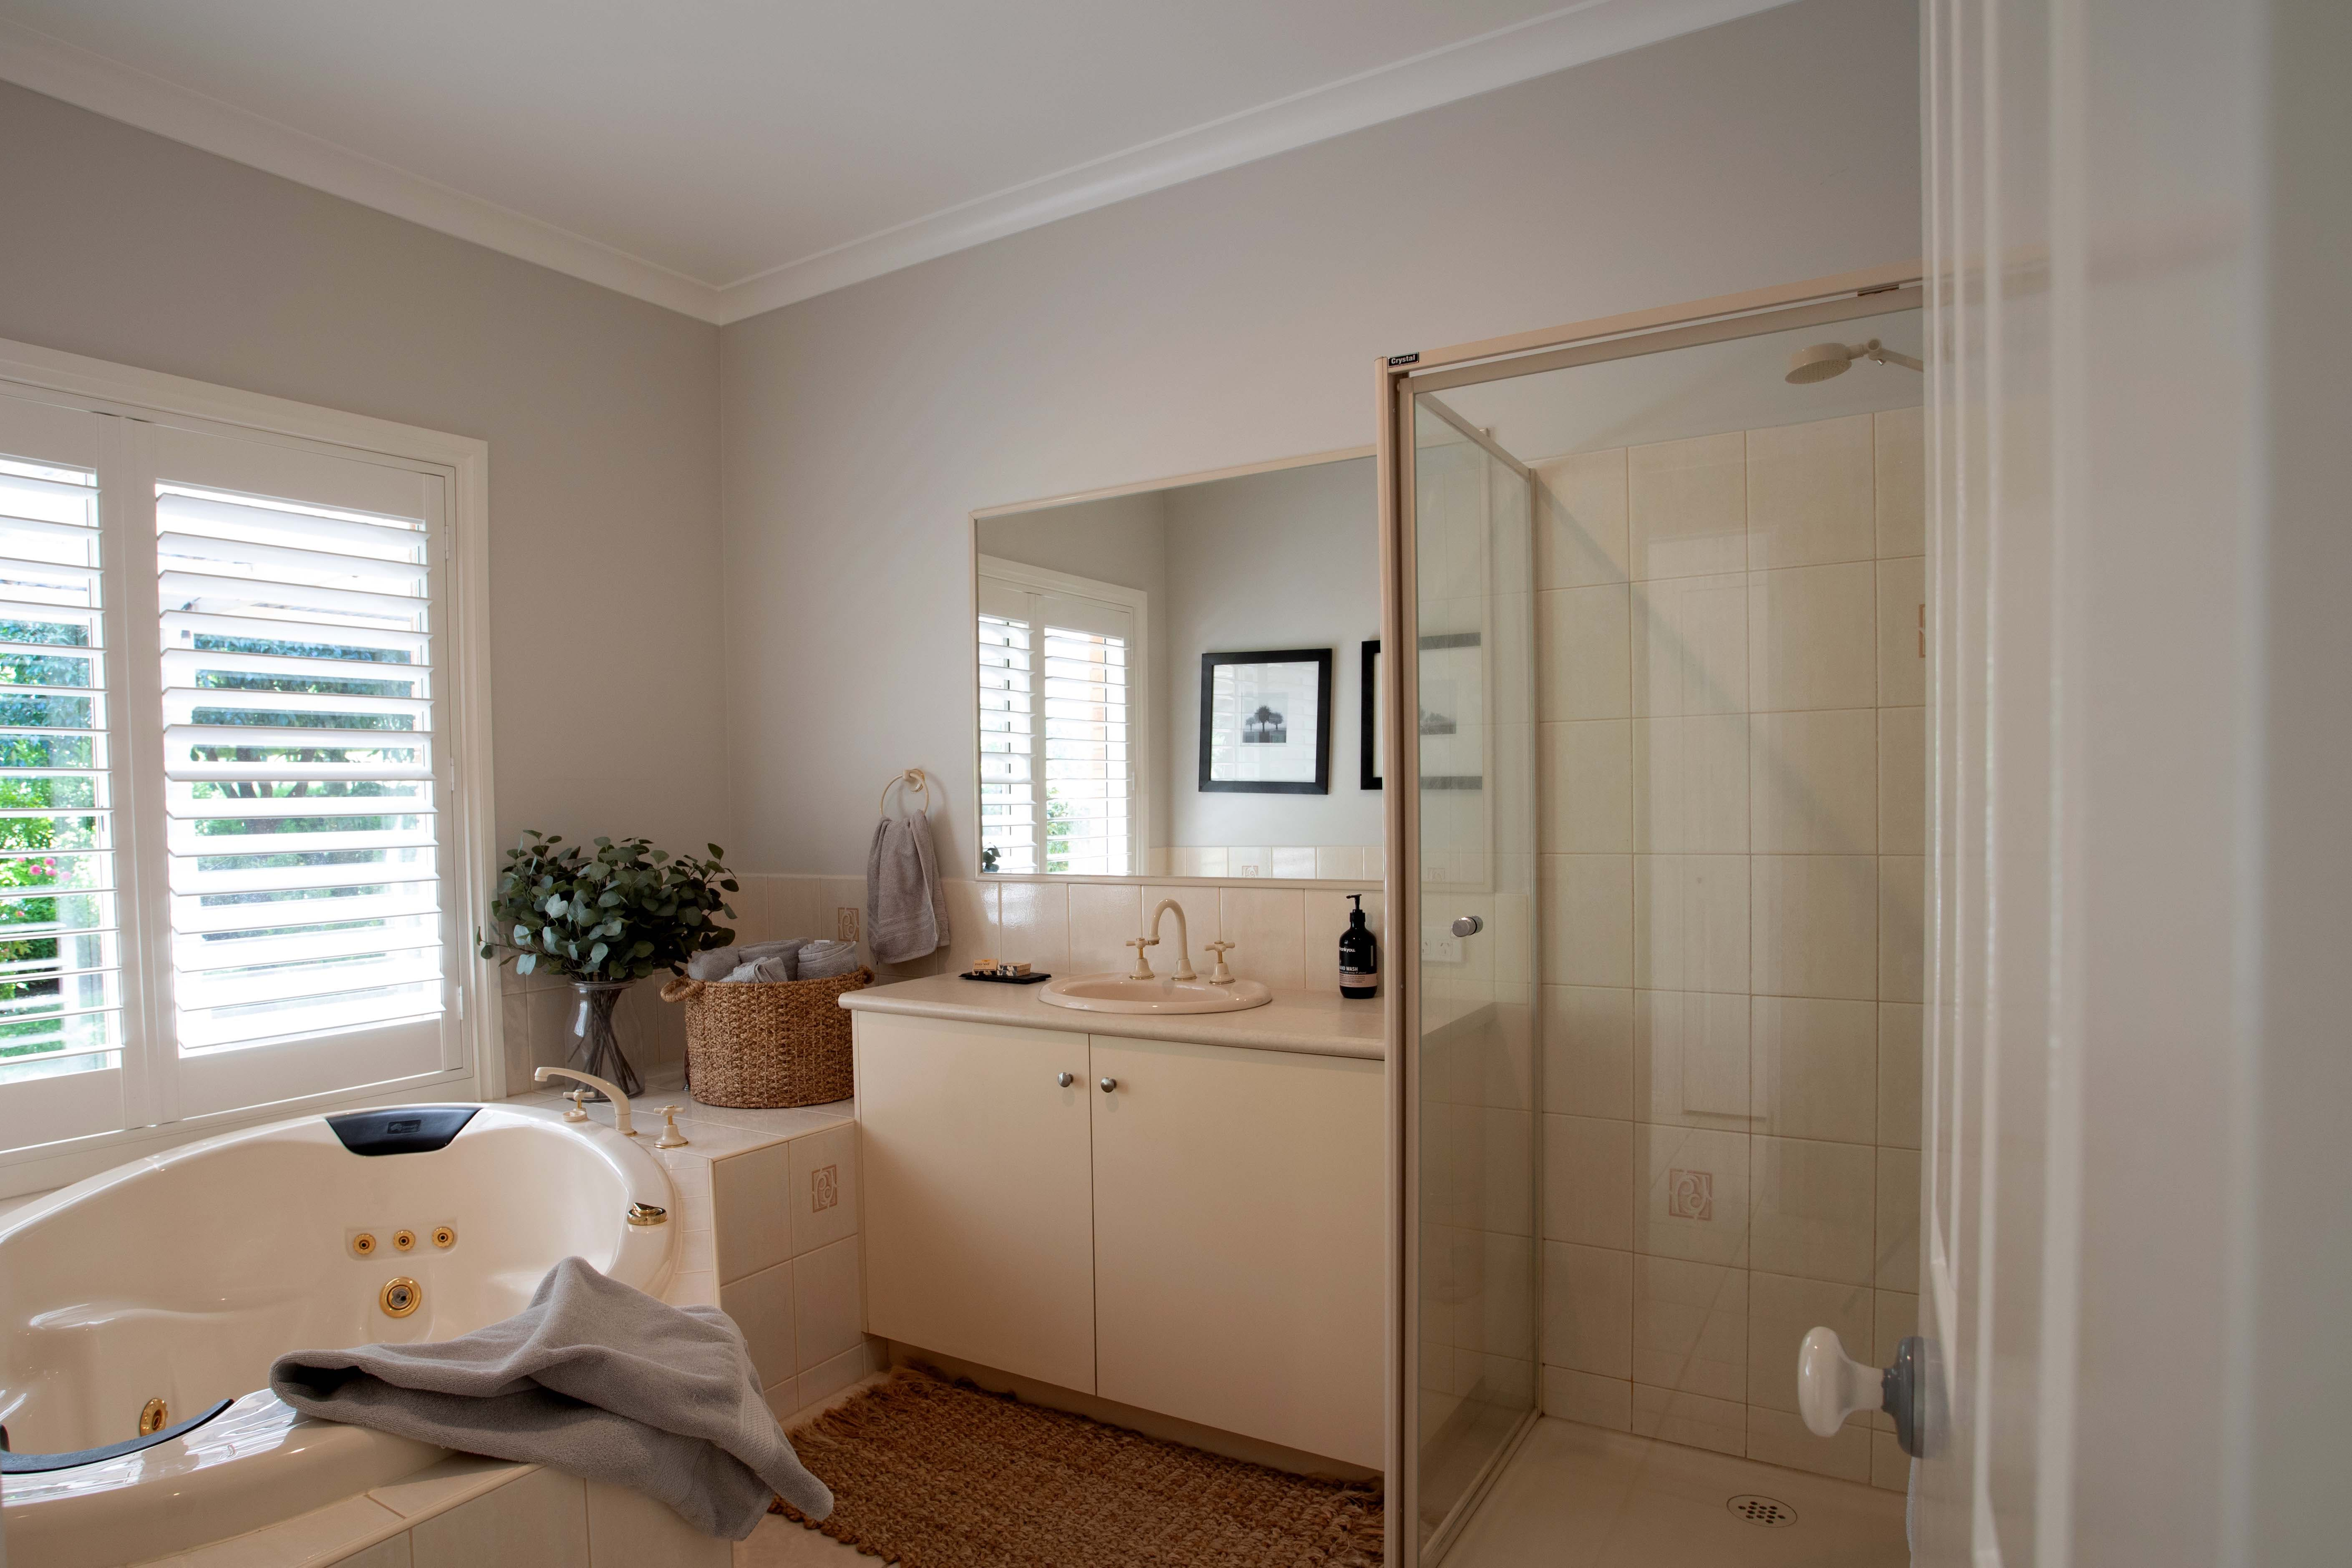 Gracefield House central bathroom includes spa bath, shower and all amenities. The master suite also has its own ensuite.